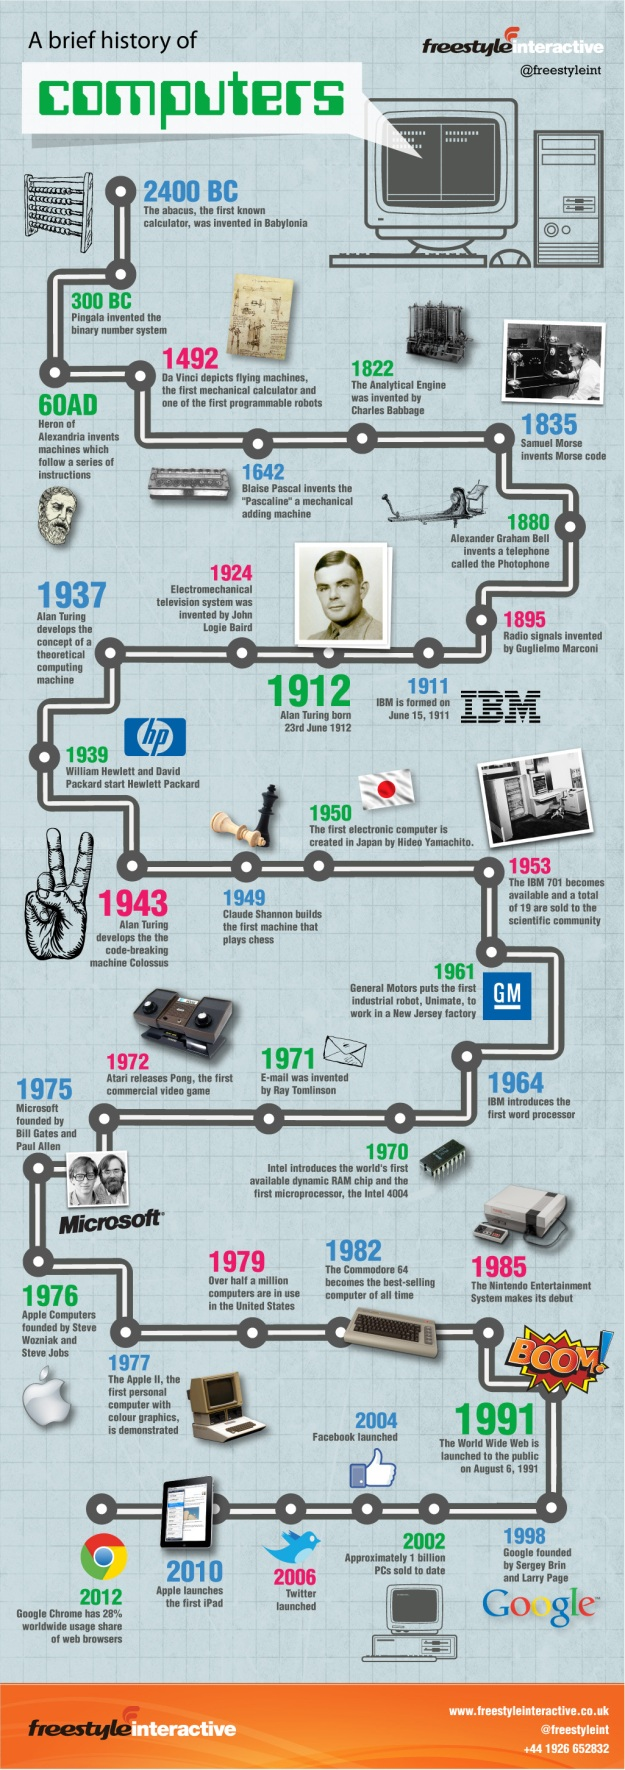 History of Computers From the Abacus to the iPad